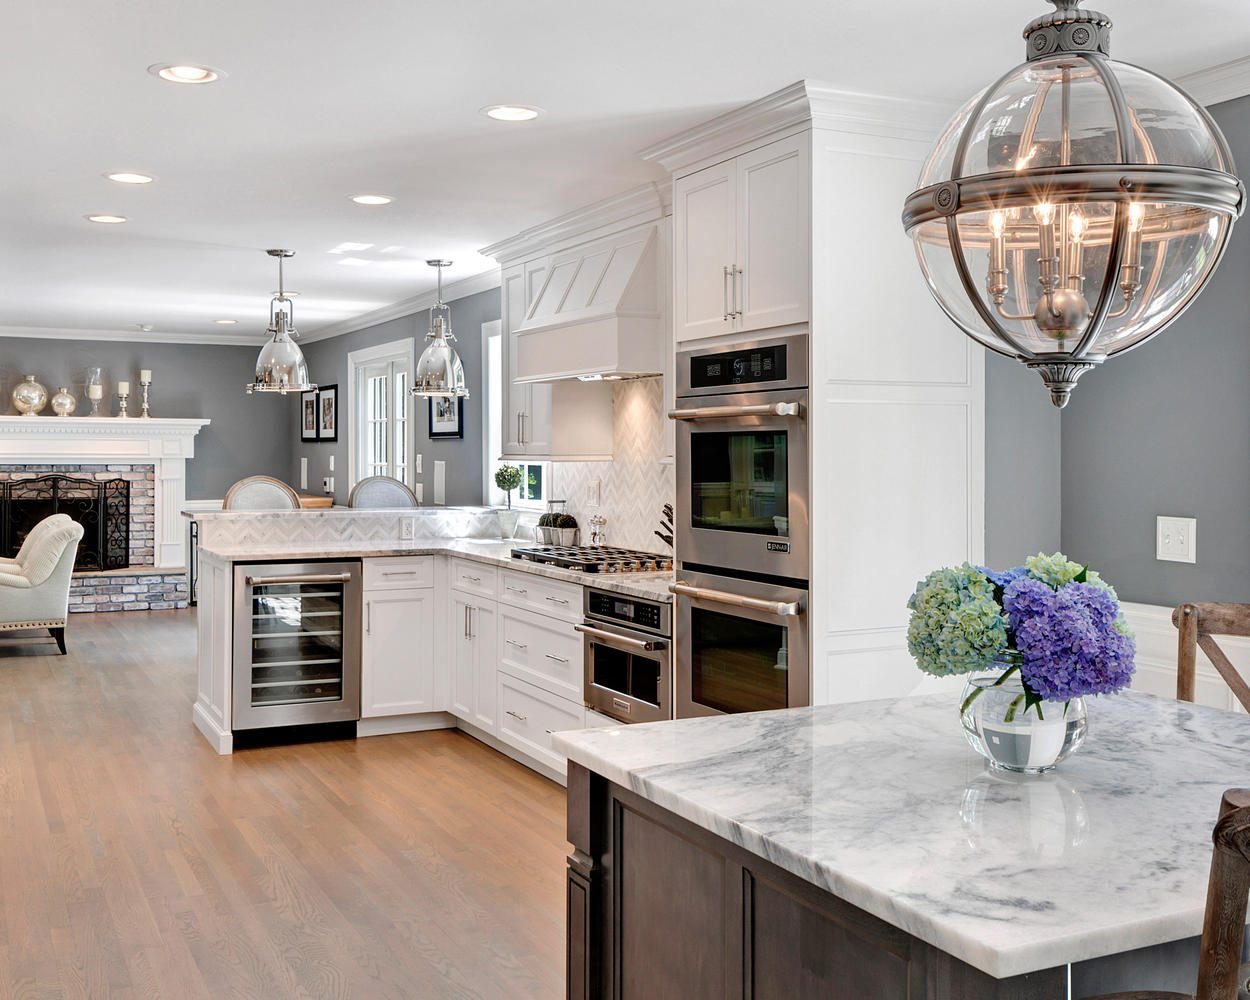 Timeless Kitchen timeless grey and white kitchen middletown new jerseydesign